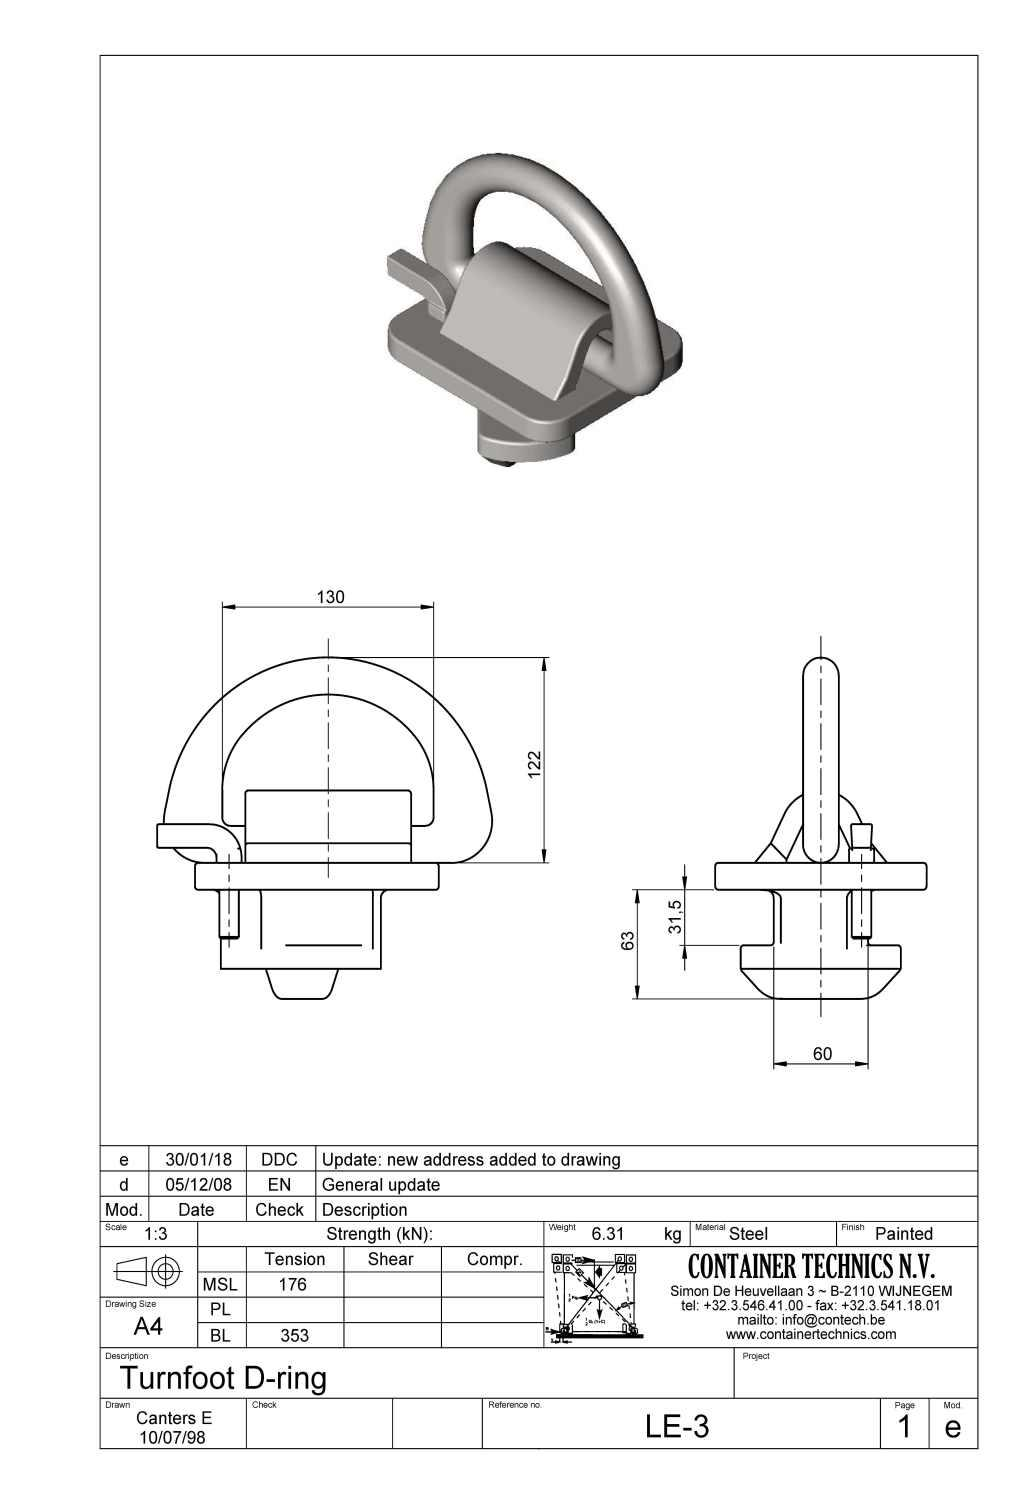 LE-3 TURNFOOT D-RING